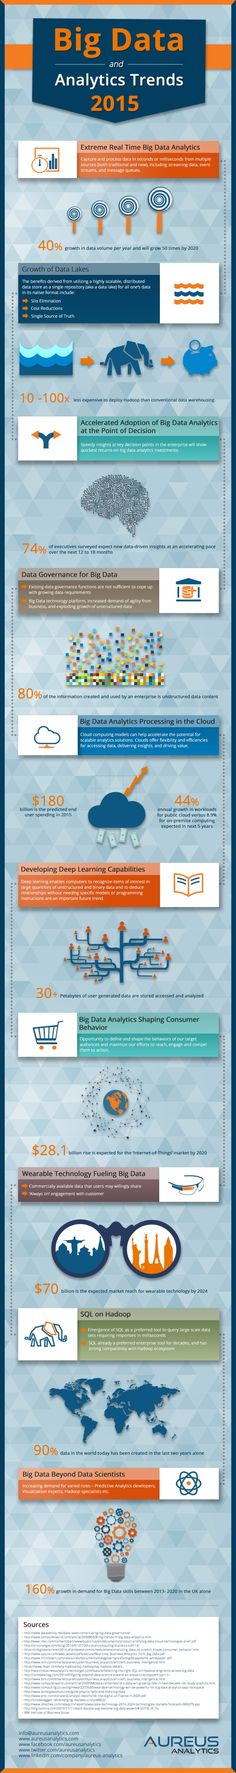 Big Data and Analytics Trends 2015 [Infographic] - B2B Infographics | The Marketing Technology Alert | Scoop.it